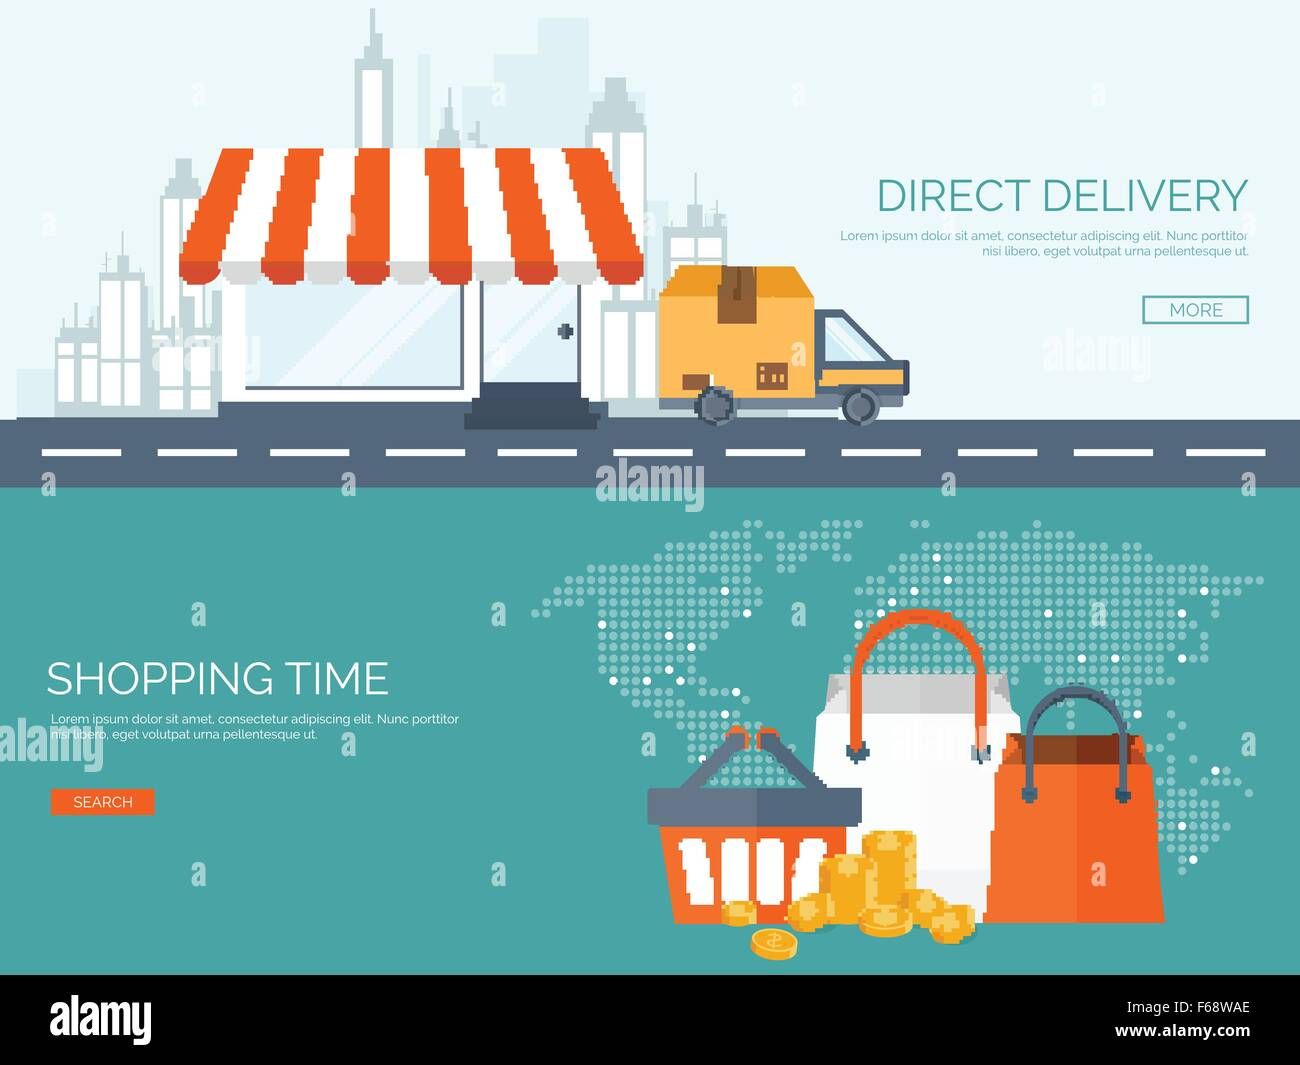 direct global trading